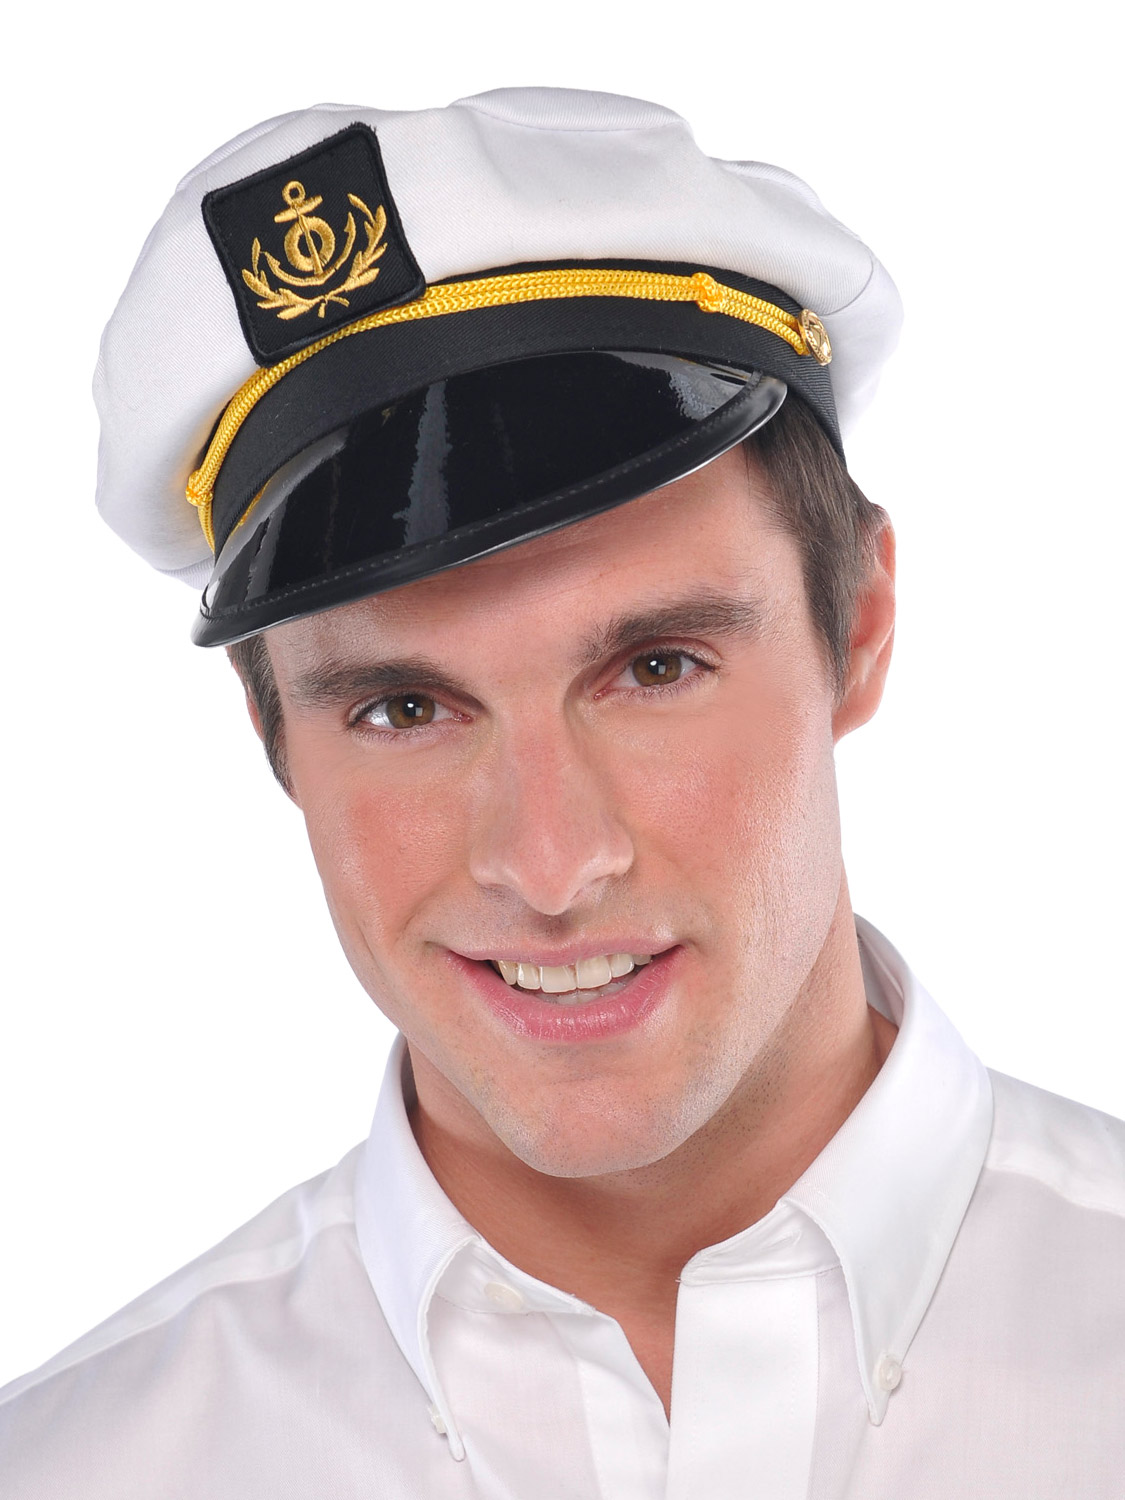 Details about Adults Skipper Hat Mens Ladies Sailor Captain Fancy Dress  Costume Accessory b14805c4654d